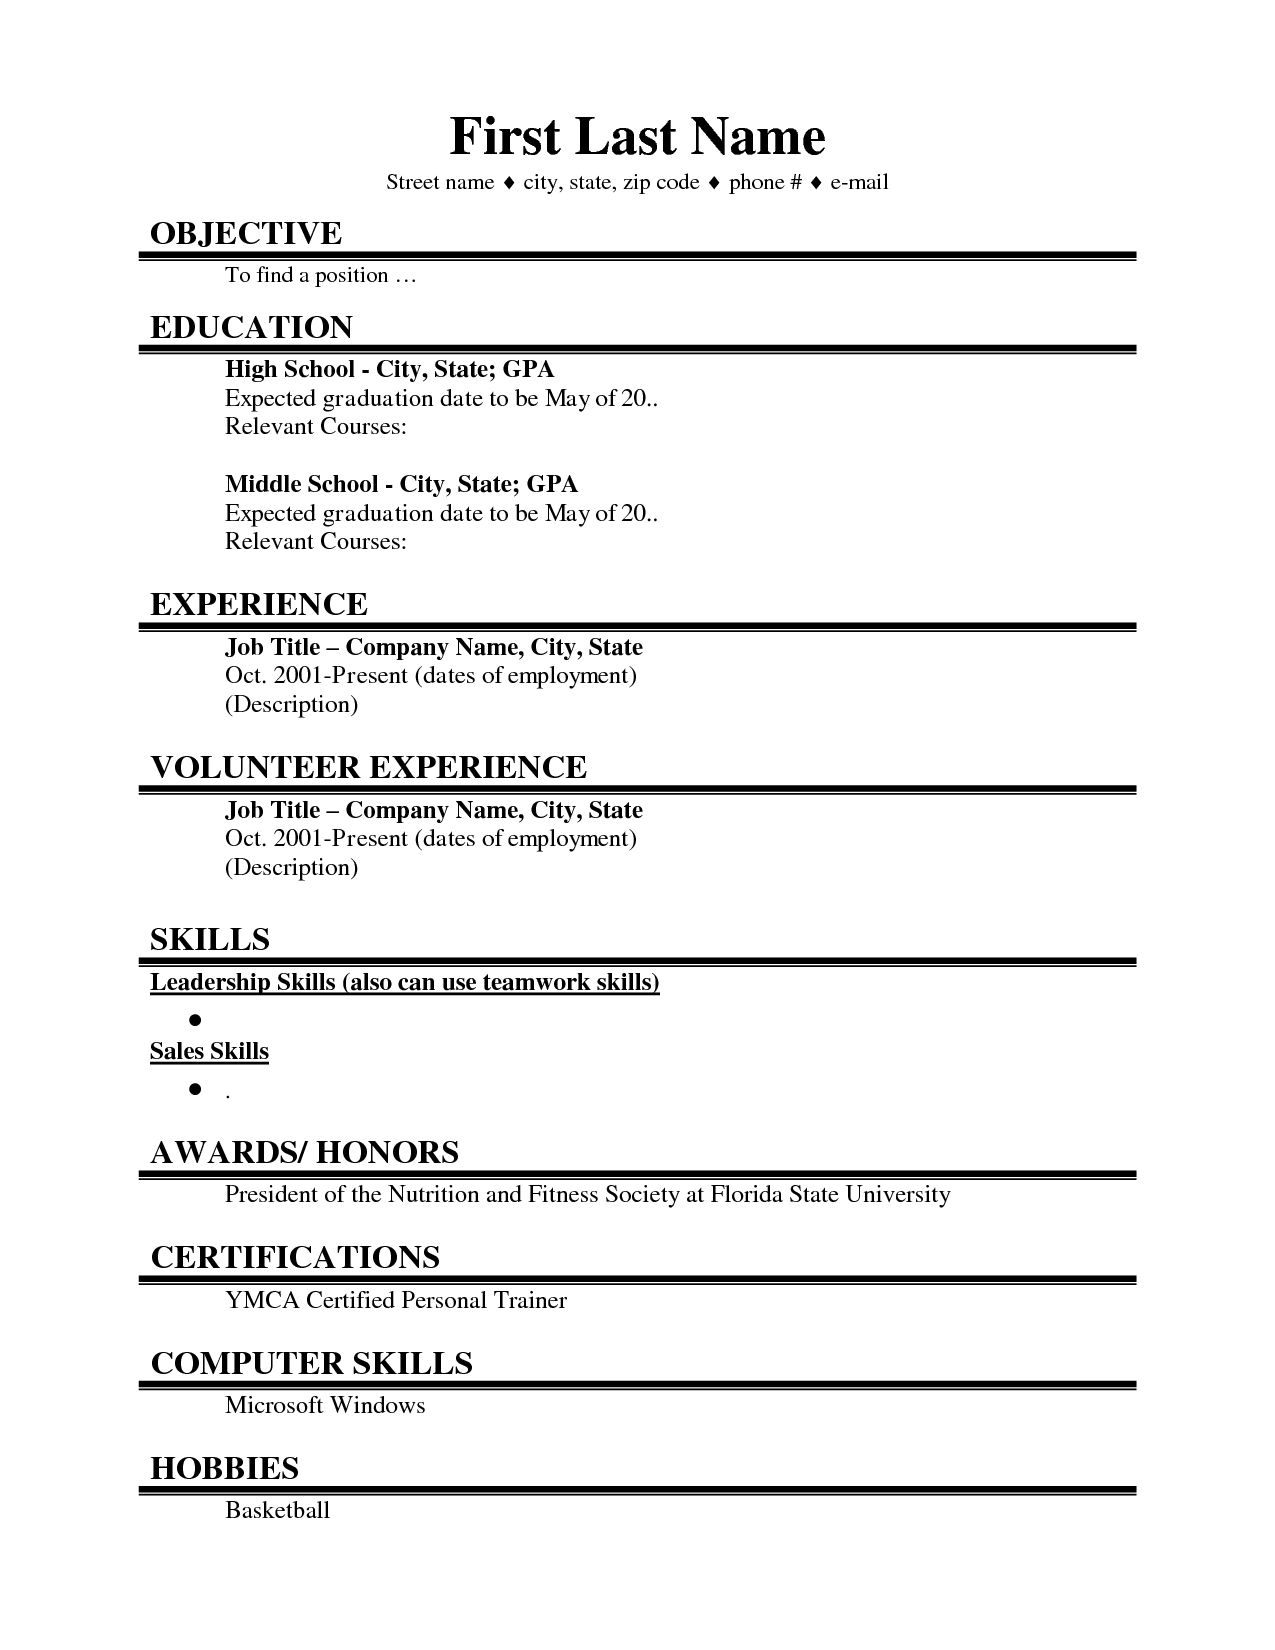 Job resume examples for college students job resume examples for american format resume cover letter sample harvard medical example for high school students college applications deeeeddbcdd madrichimfo Image collections